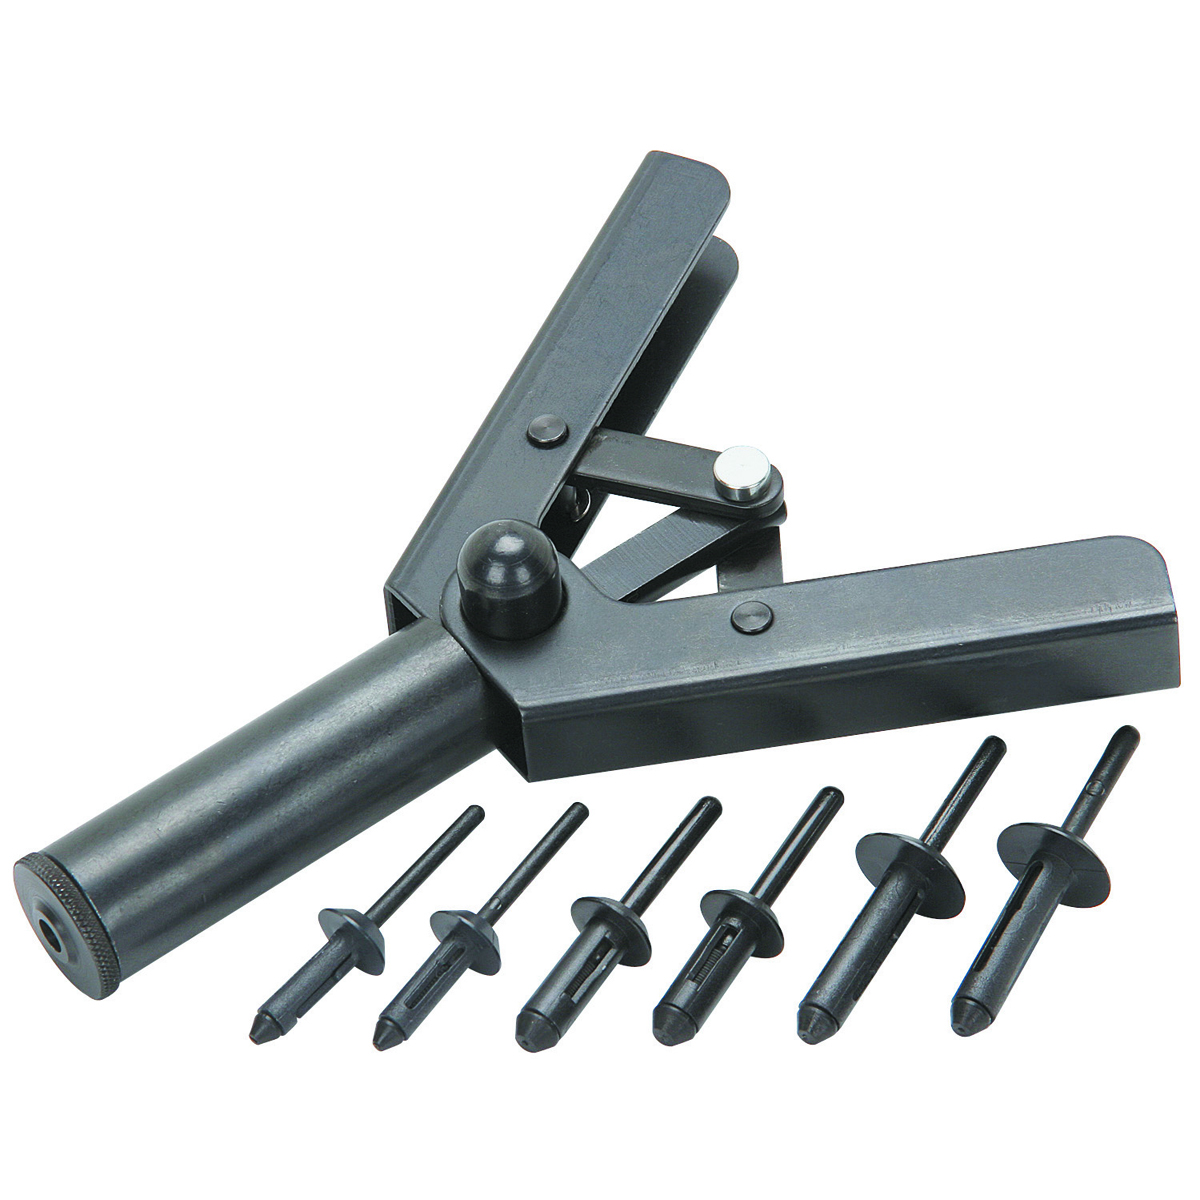 Hand Riveter with 40 Industrial Strength Poly Rivets